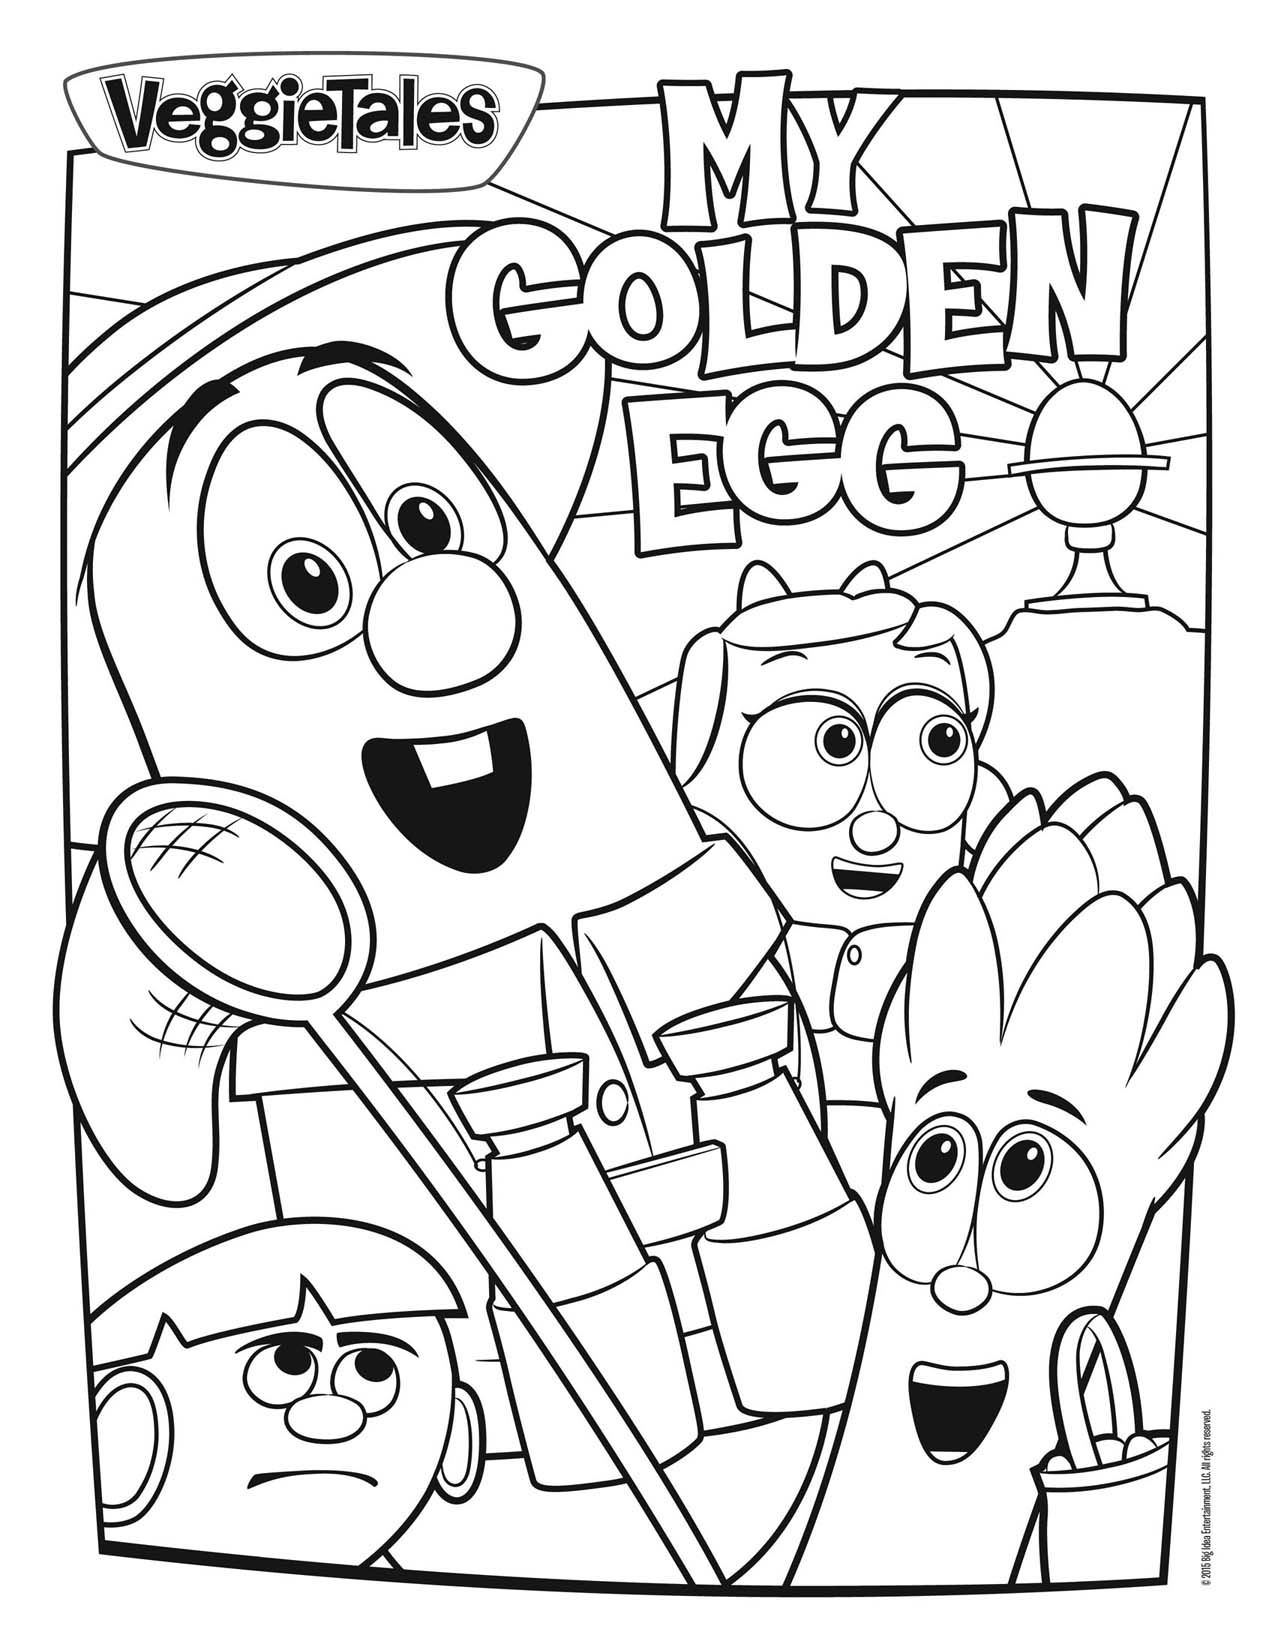 Veggie Tales Christmas Coloring Pages With My Gold Egg Noah S Ark Page The Incredible Superhero